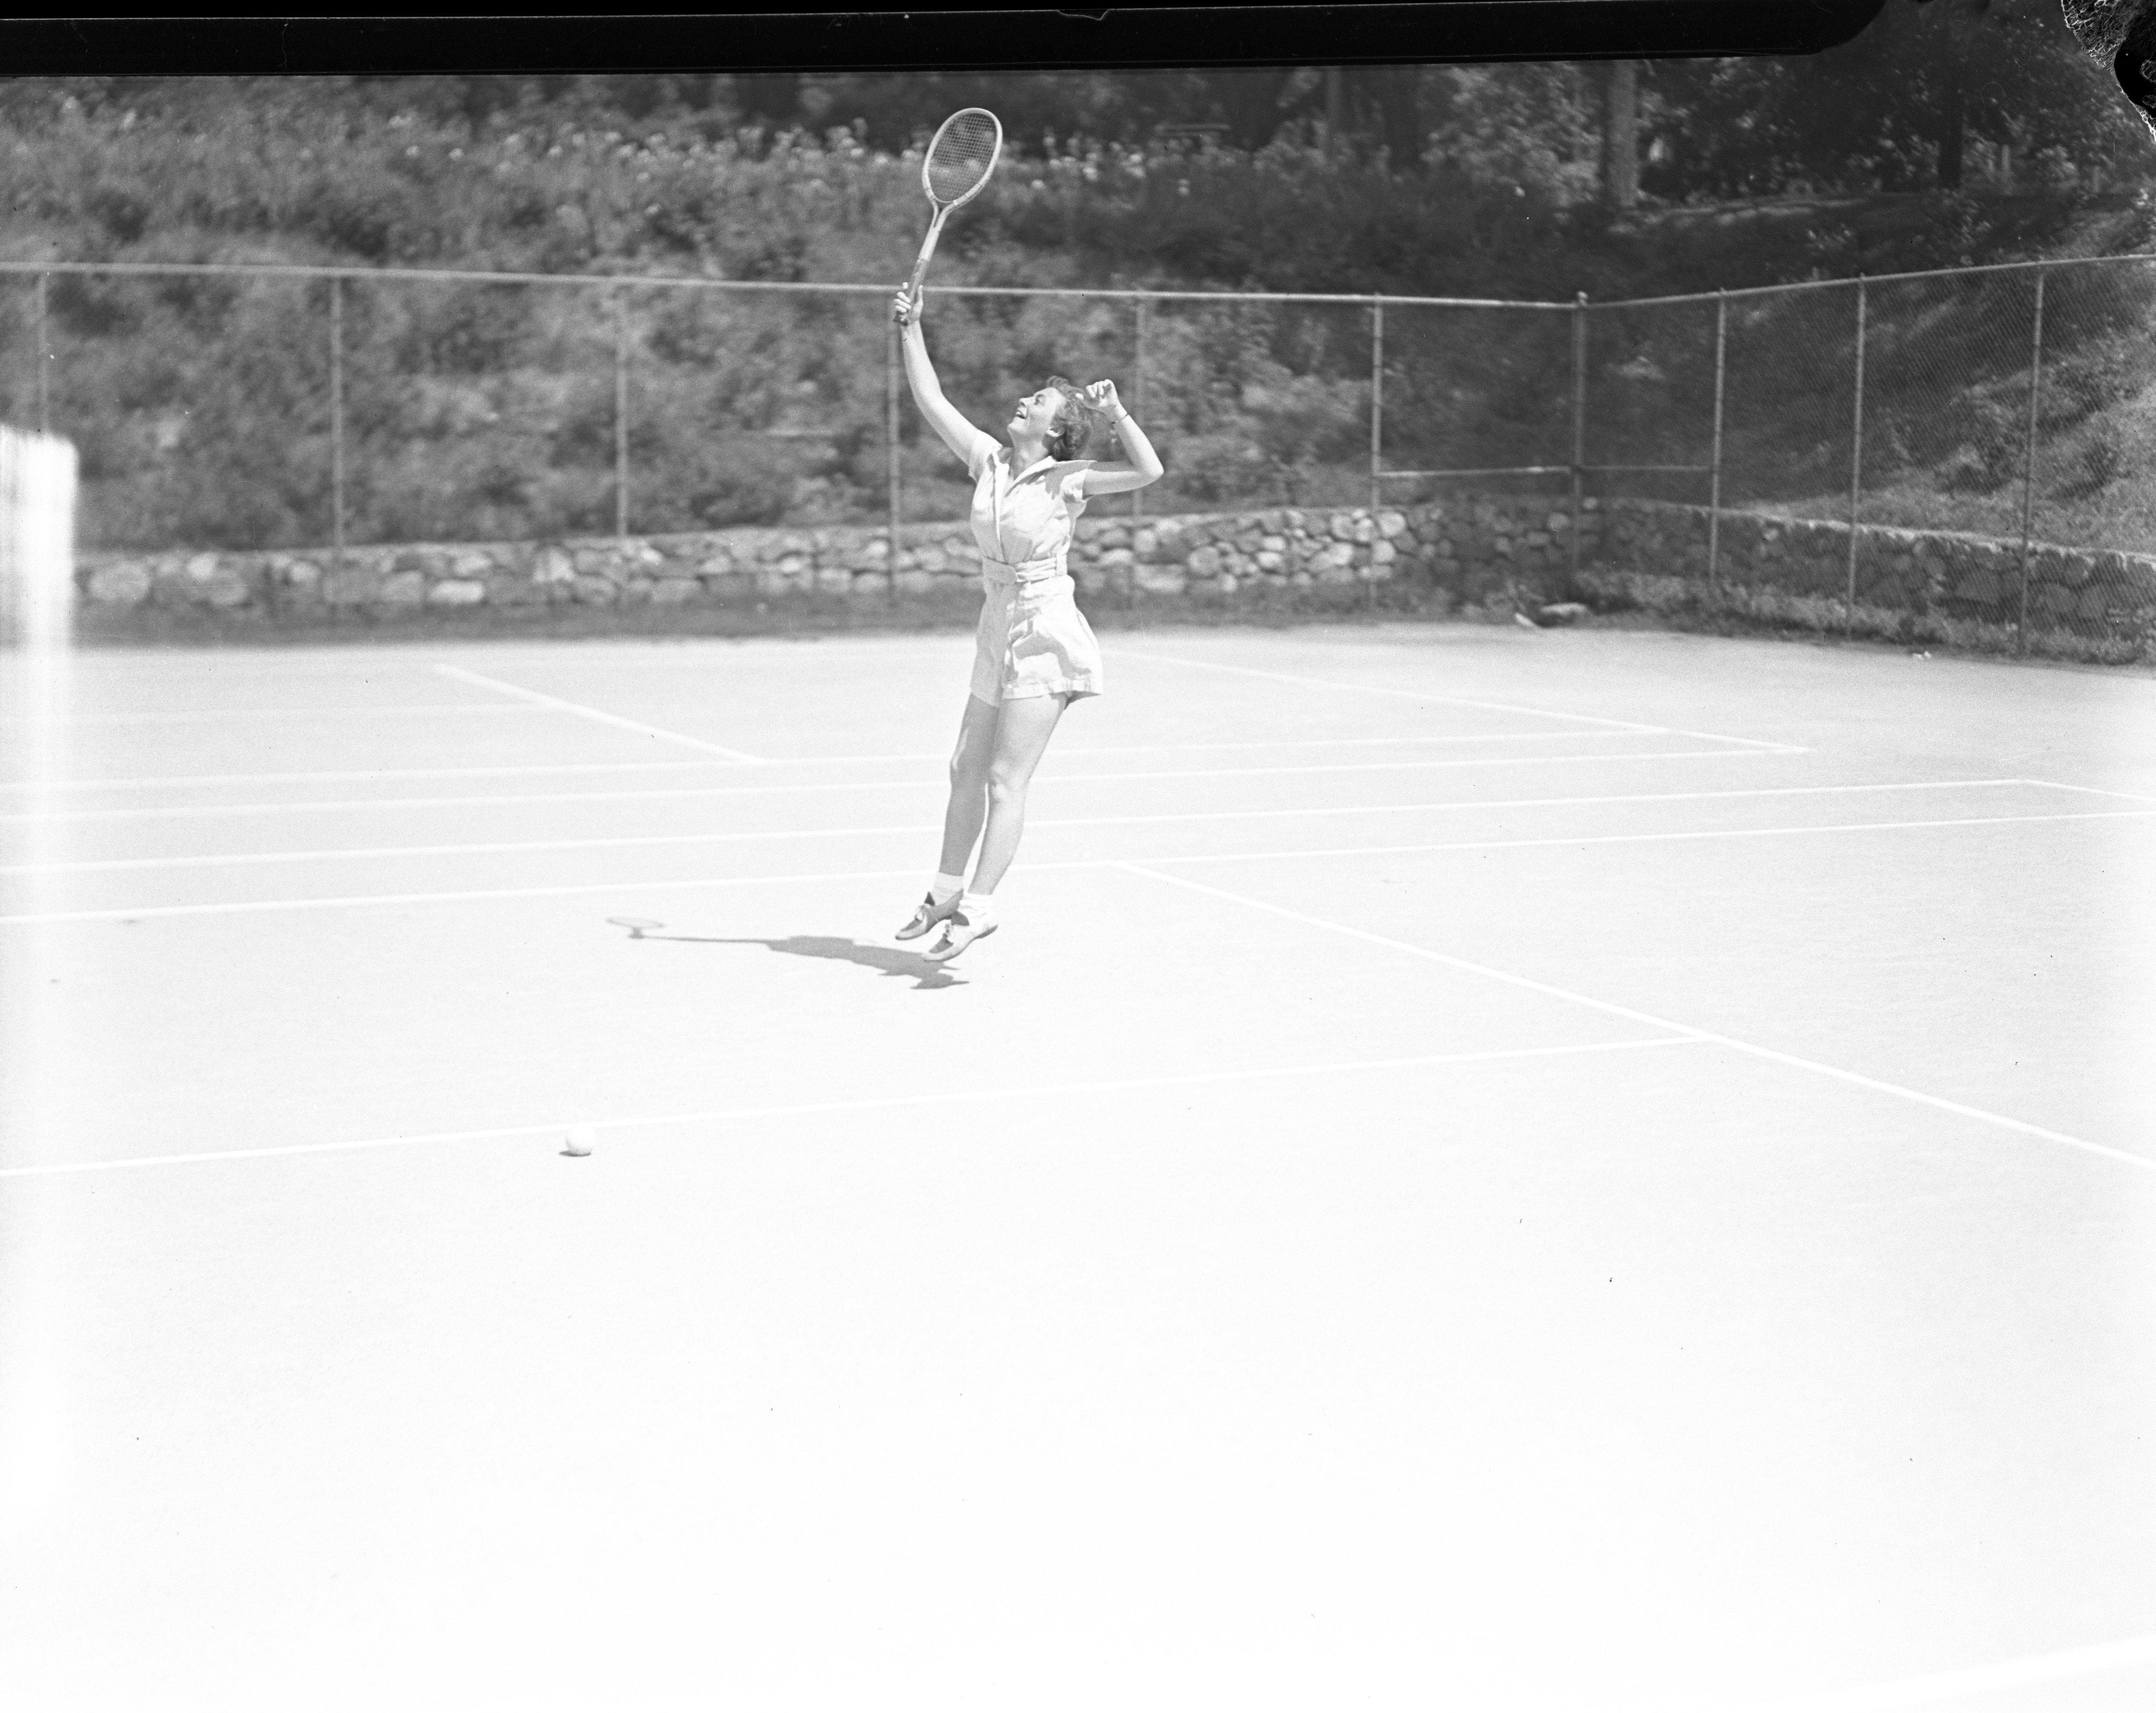 Tennis on Palmer Field, 1937 image